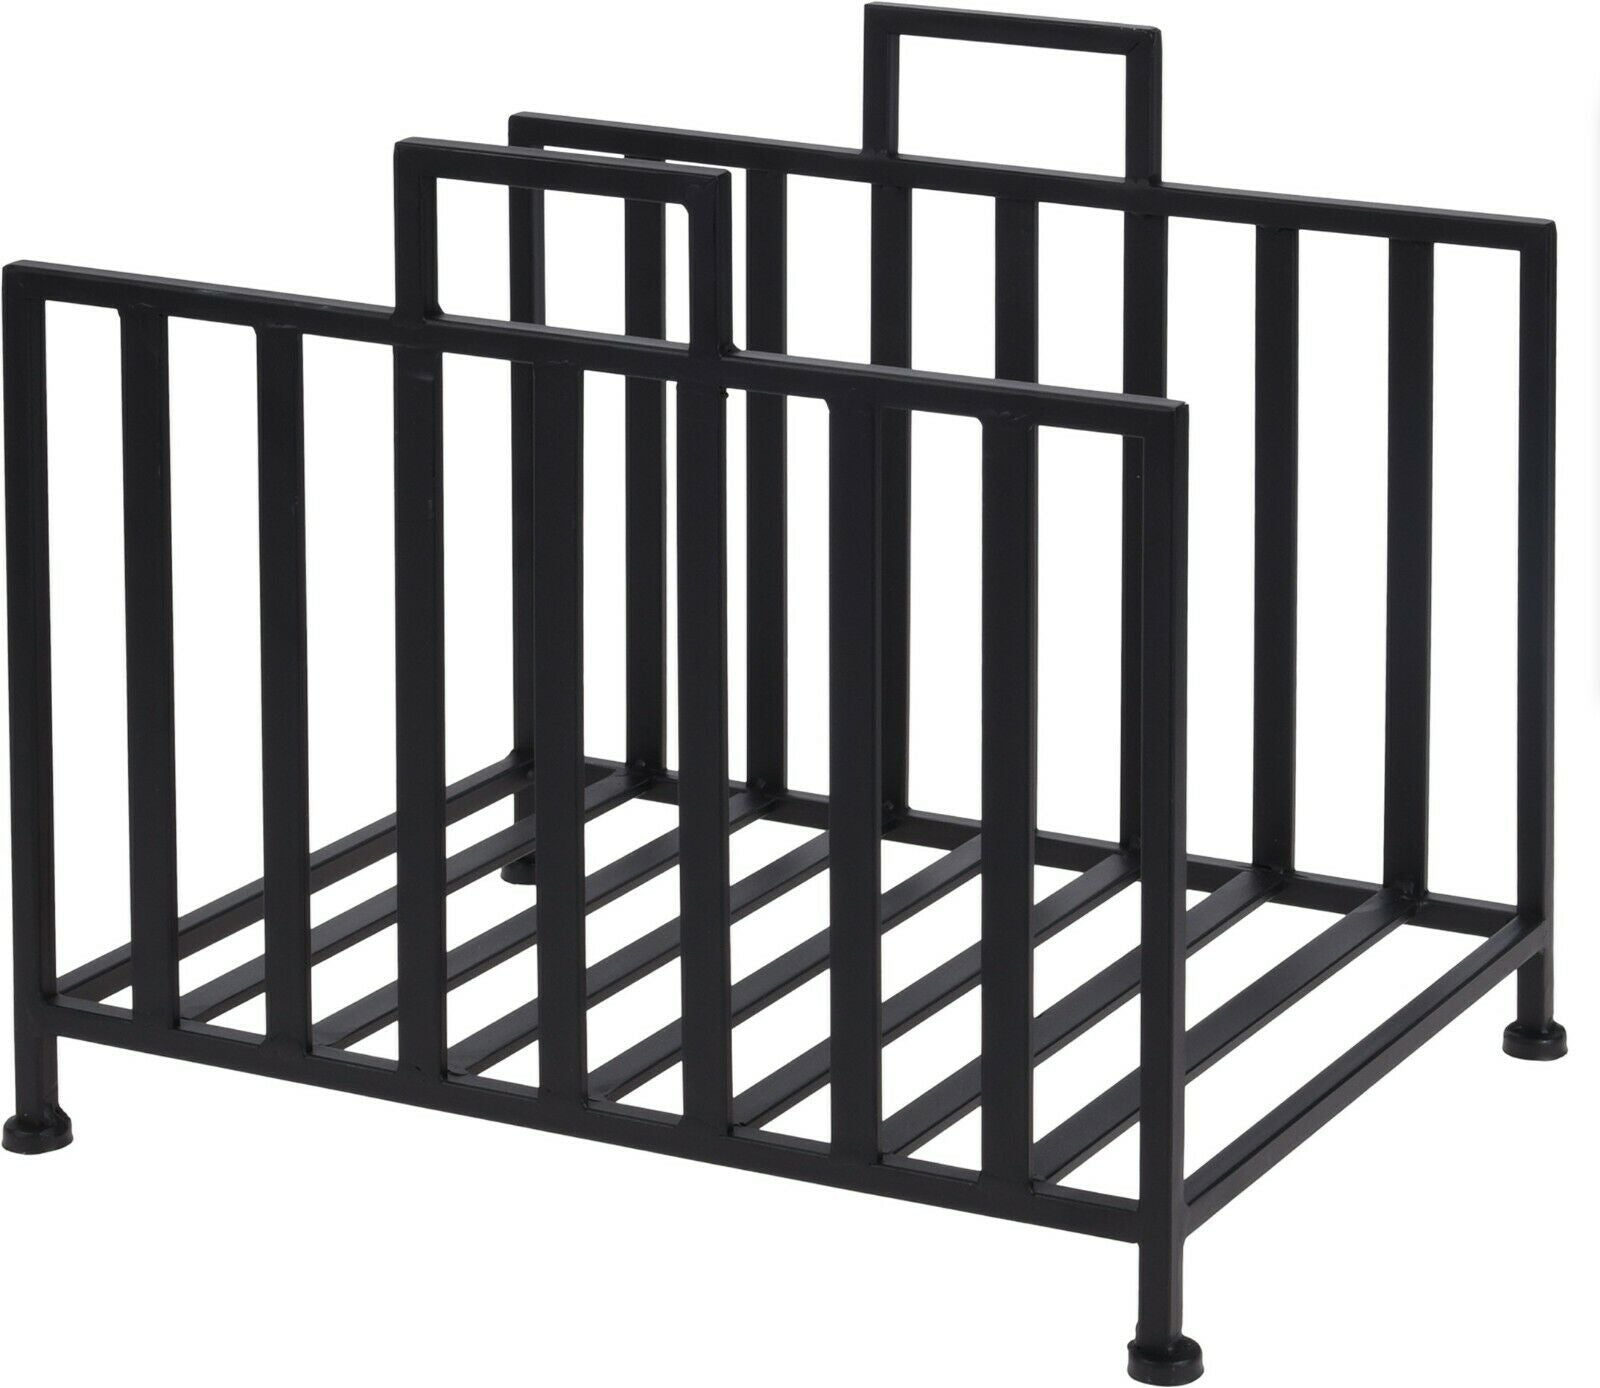 Black Metal Log Storage Stand Log Basket Holder Rack 40 x 31 x 35 cm